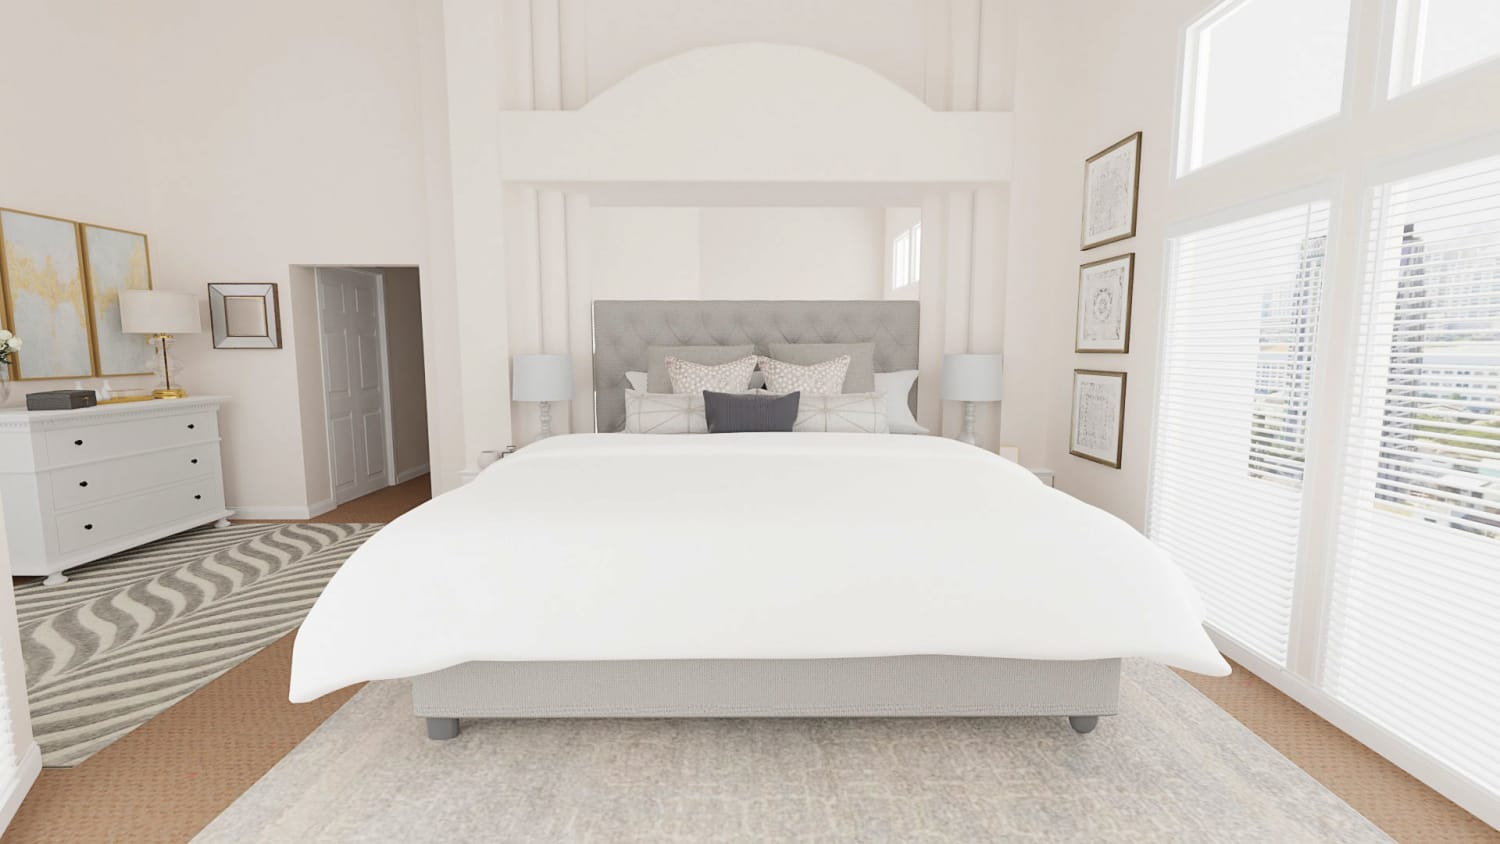 Spacejoy review of Bedroom Designed For Maxie and Mark McClintock